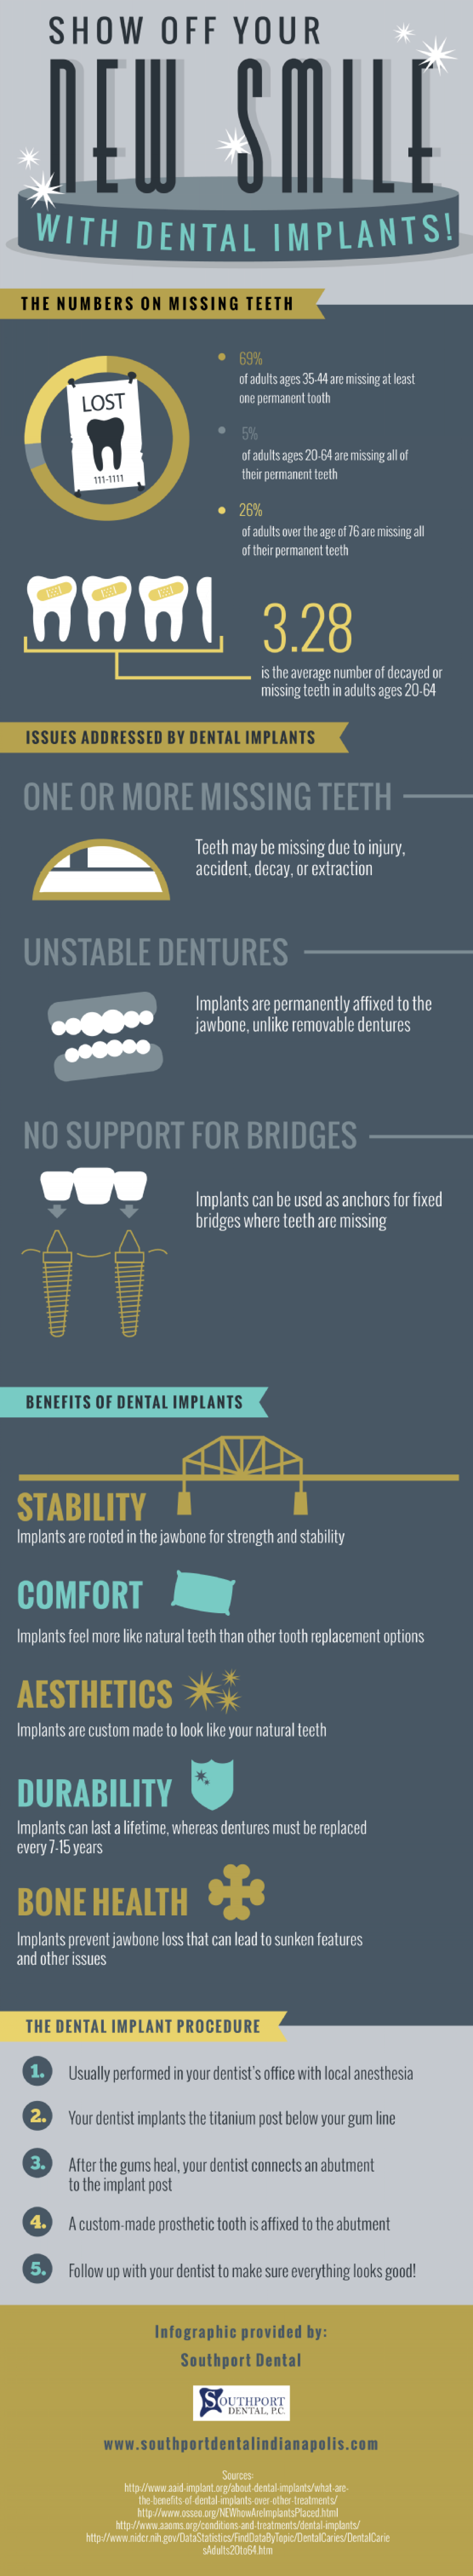 Show Off Your New Smile with Dental Implants! Infographic